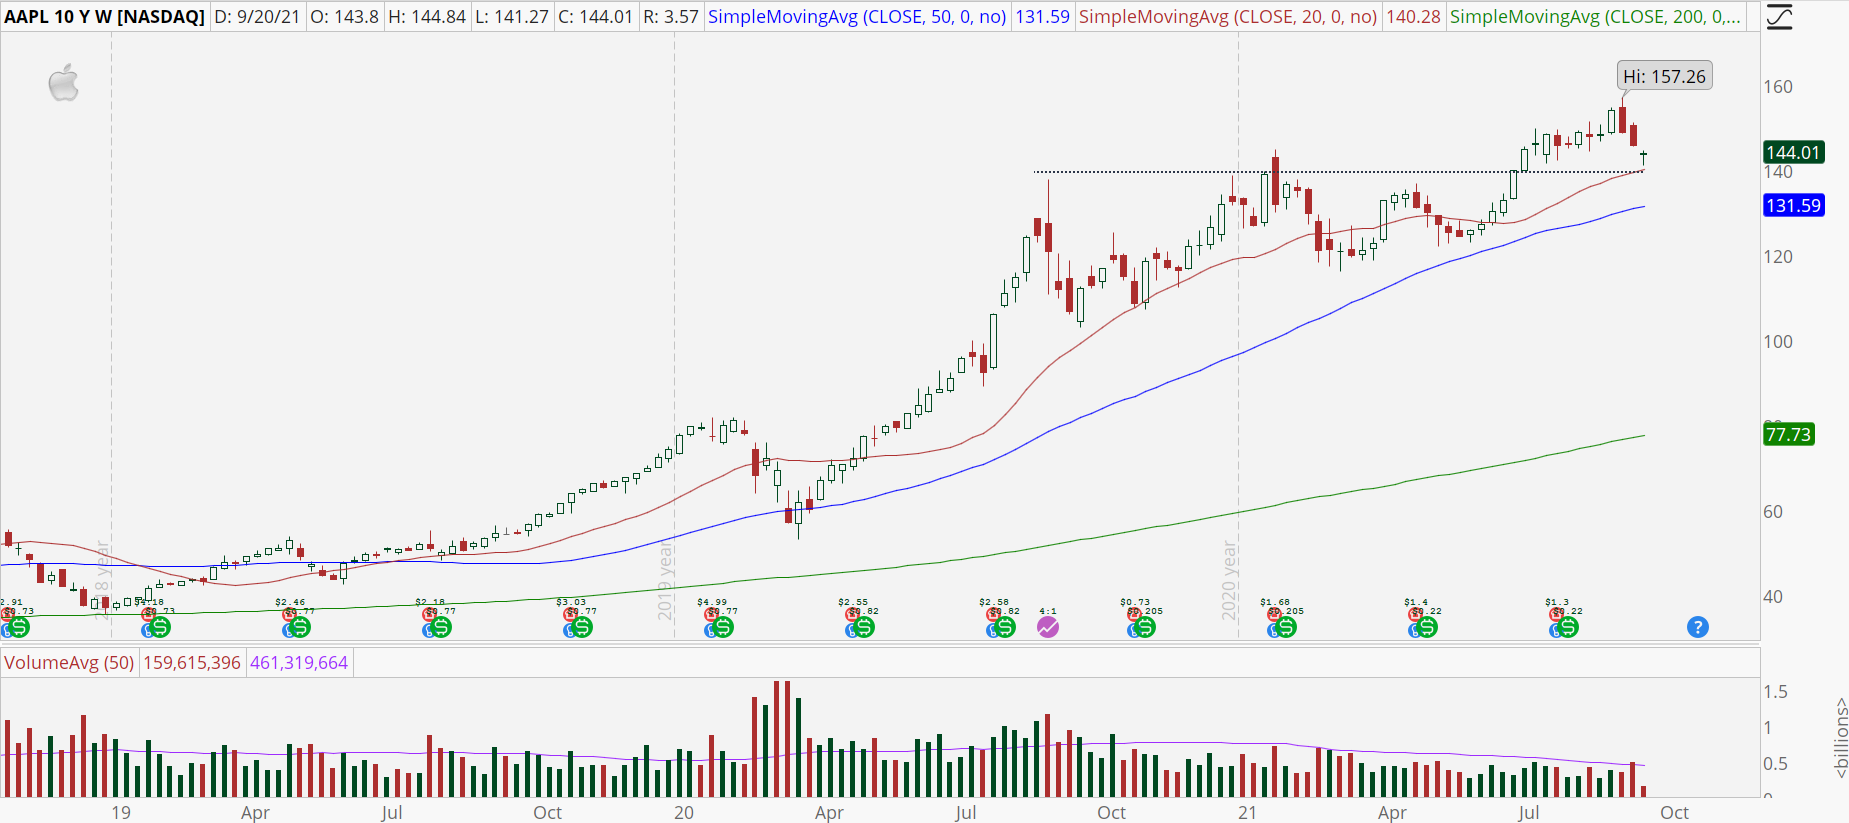 Apple (AAPL) weekly stock chart with bull retracement